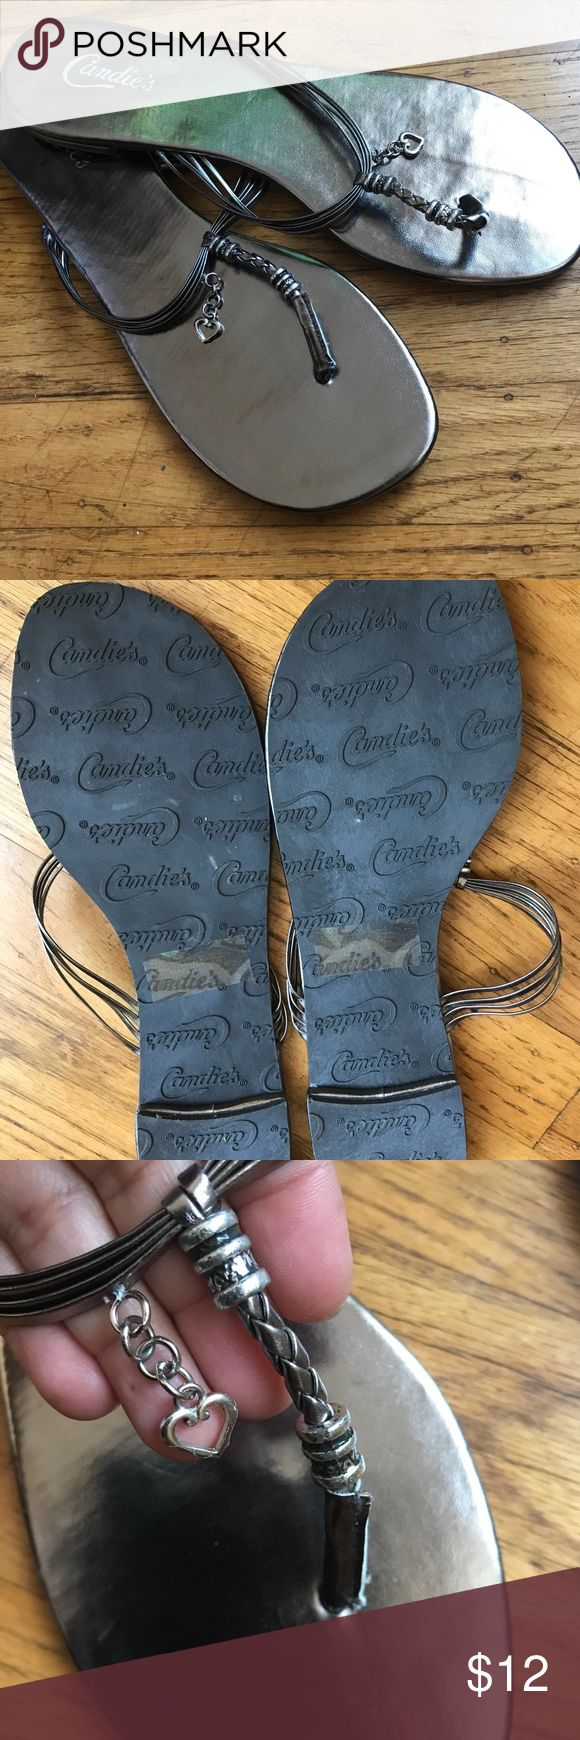 Candie's Pewter Sandals Cute dangling jewel design pewter colored sandals perfect to wear with dresses/skirts, shorts or jeans!! /NEW/Never worn Candie's Shoes Sandals